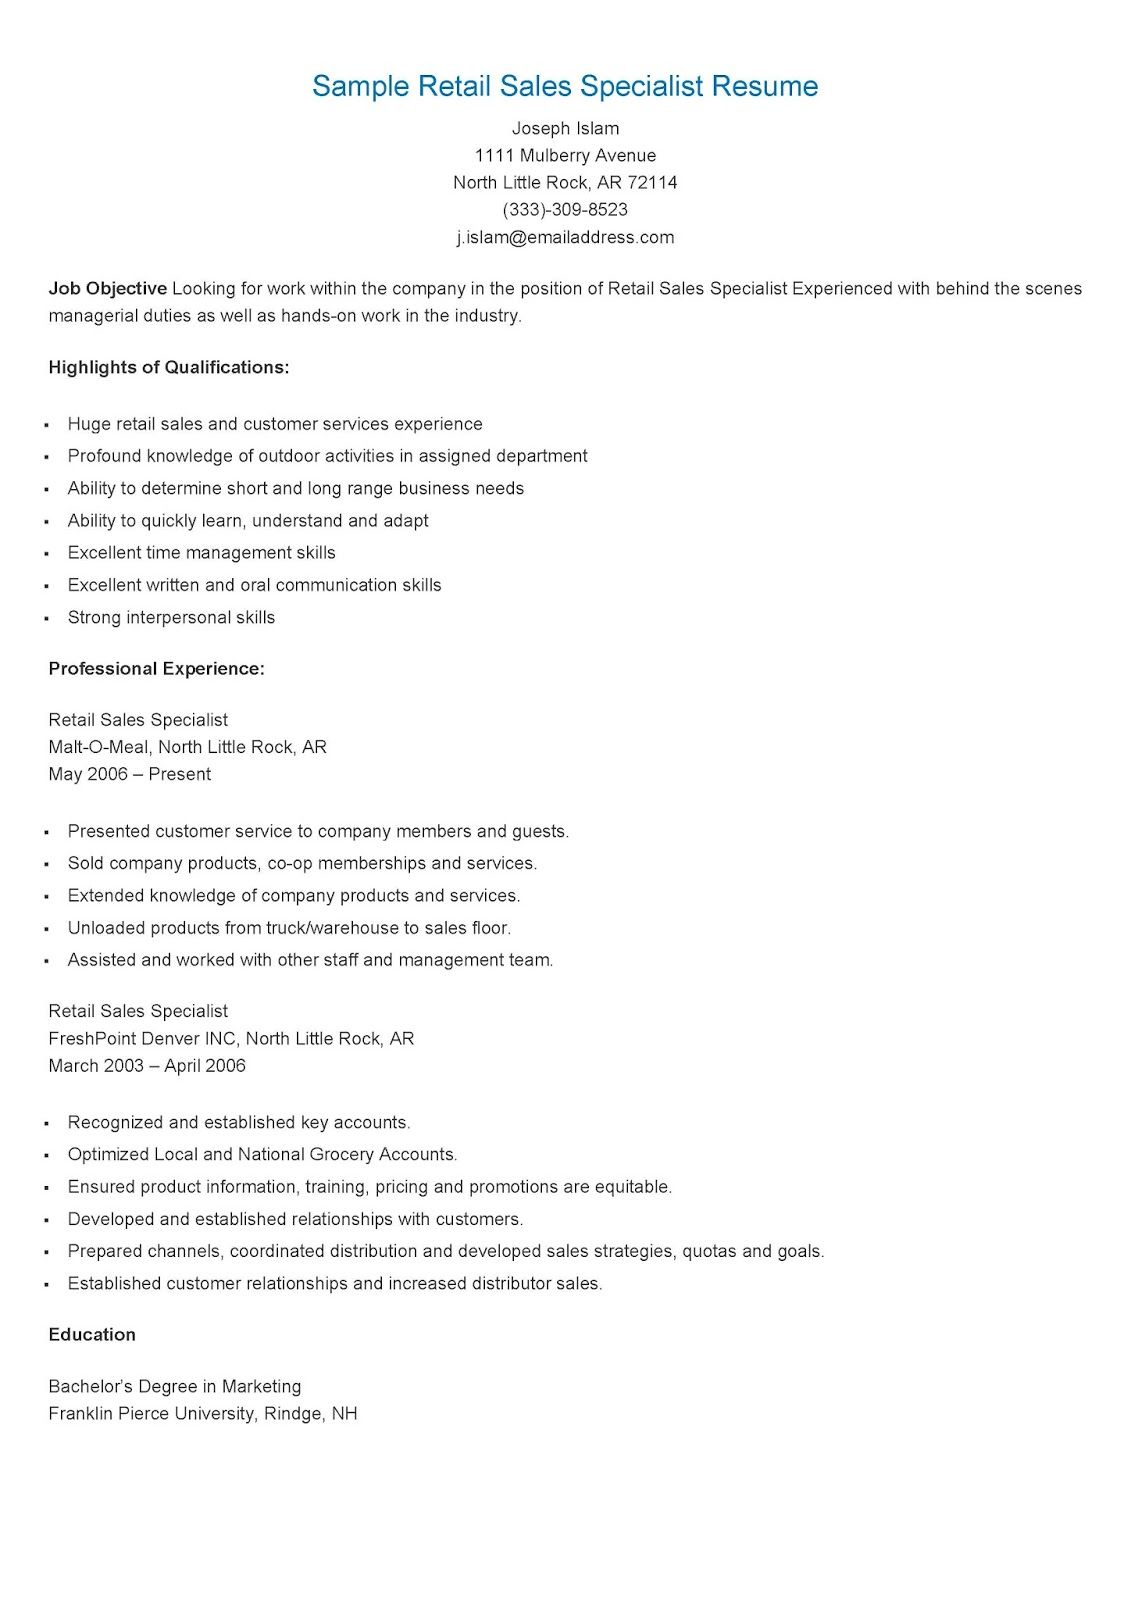 sample retail sales specialist resume - Warehouse Specialist Resume